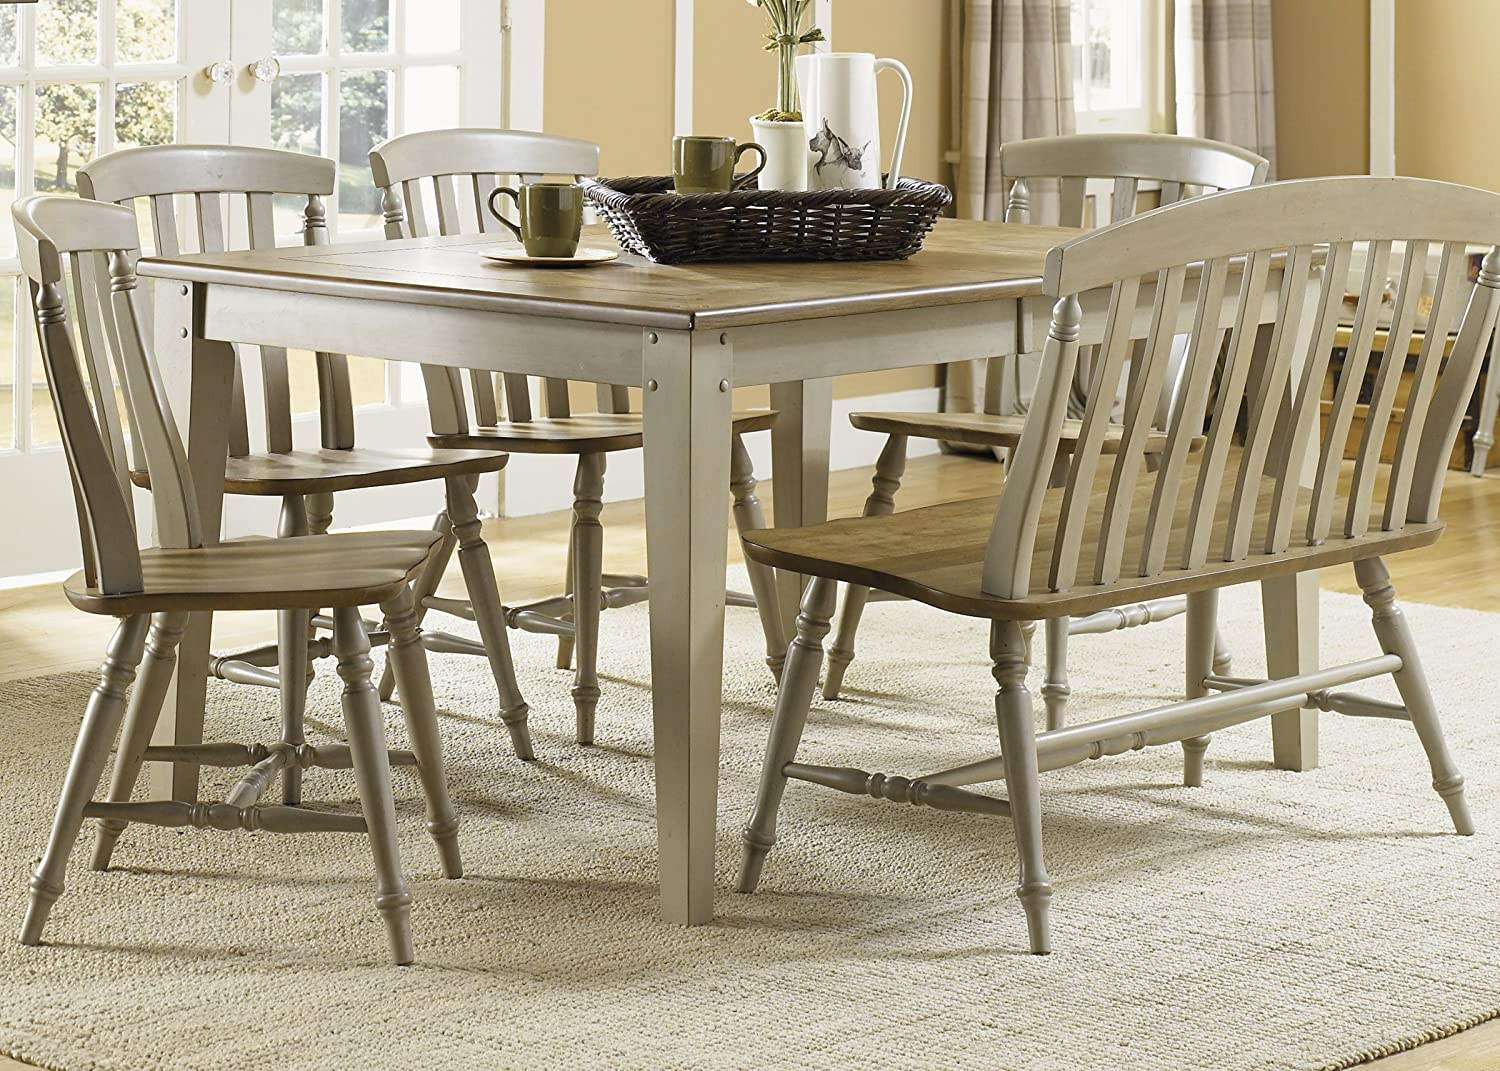 Amazon.com - Liberty Furniture 541-T4074 Al Fresco Dining Rectangular Leg Table 40  x 74  x 30  Driftwood and Taupe - Tables & Amazon.com - Liberty Furniture 541-T4074 Al Fresco Dining ...